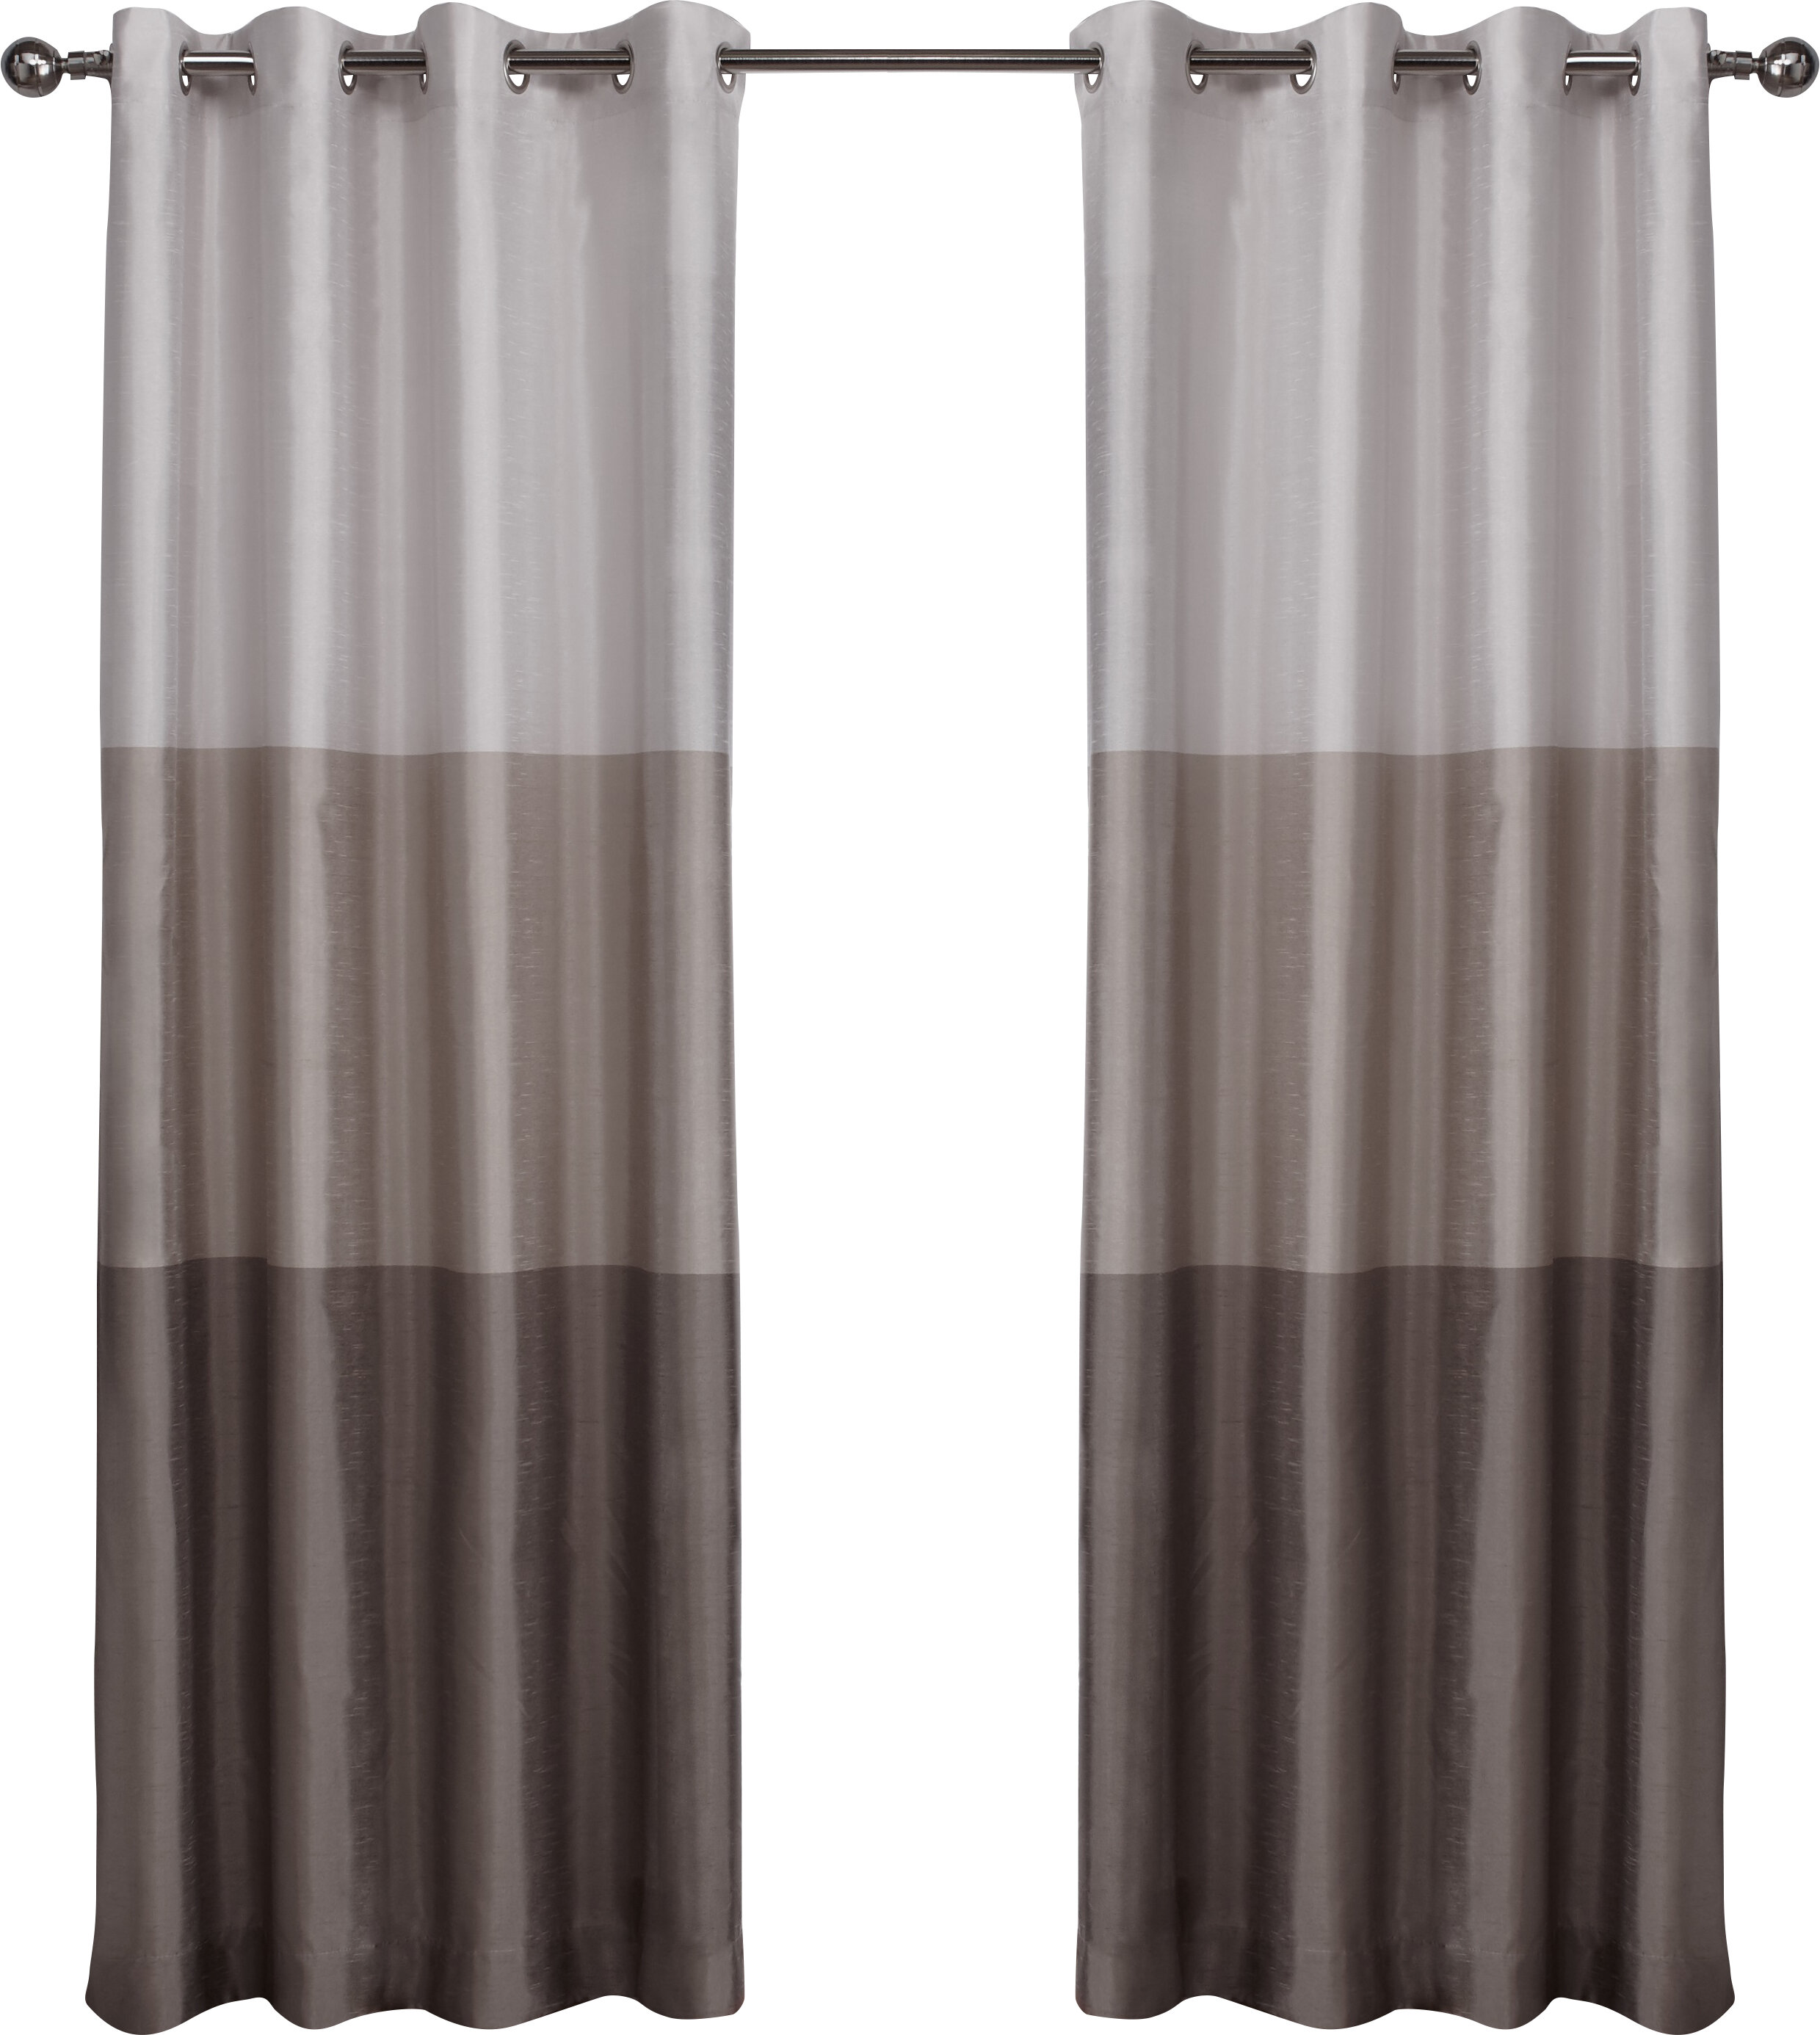 window treatments autumn category do drapes xxx valance top rugs leaves grommet market world curtains openweave